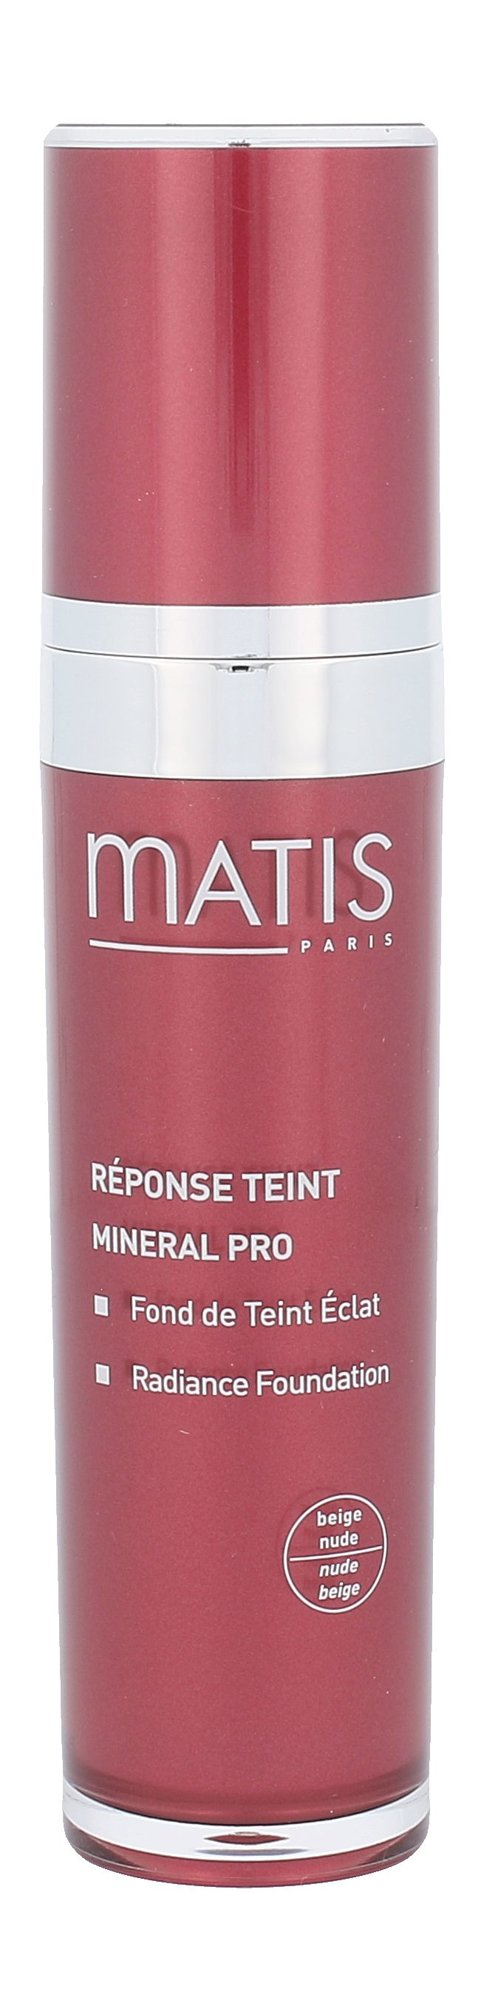 Matis Réponse Teint Radiance Foundation Cosmetic 30ml Beige Nude